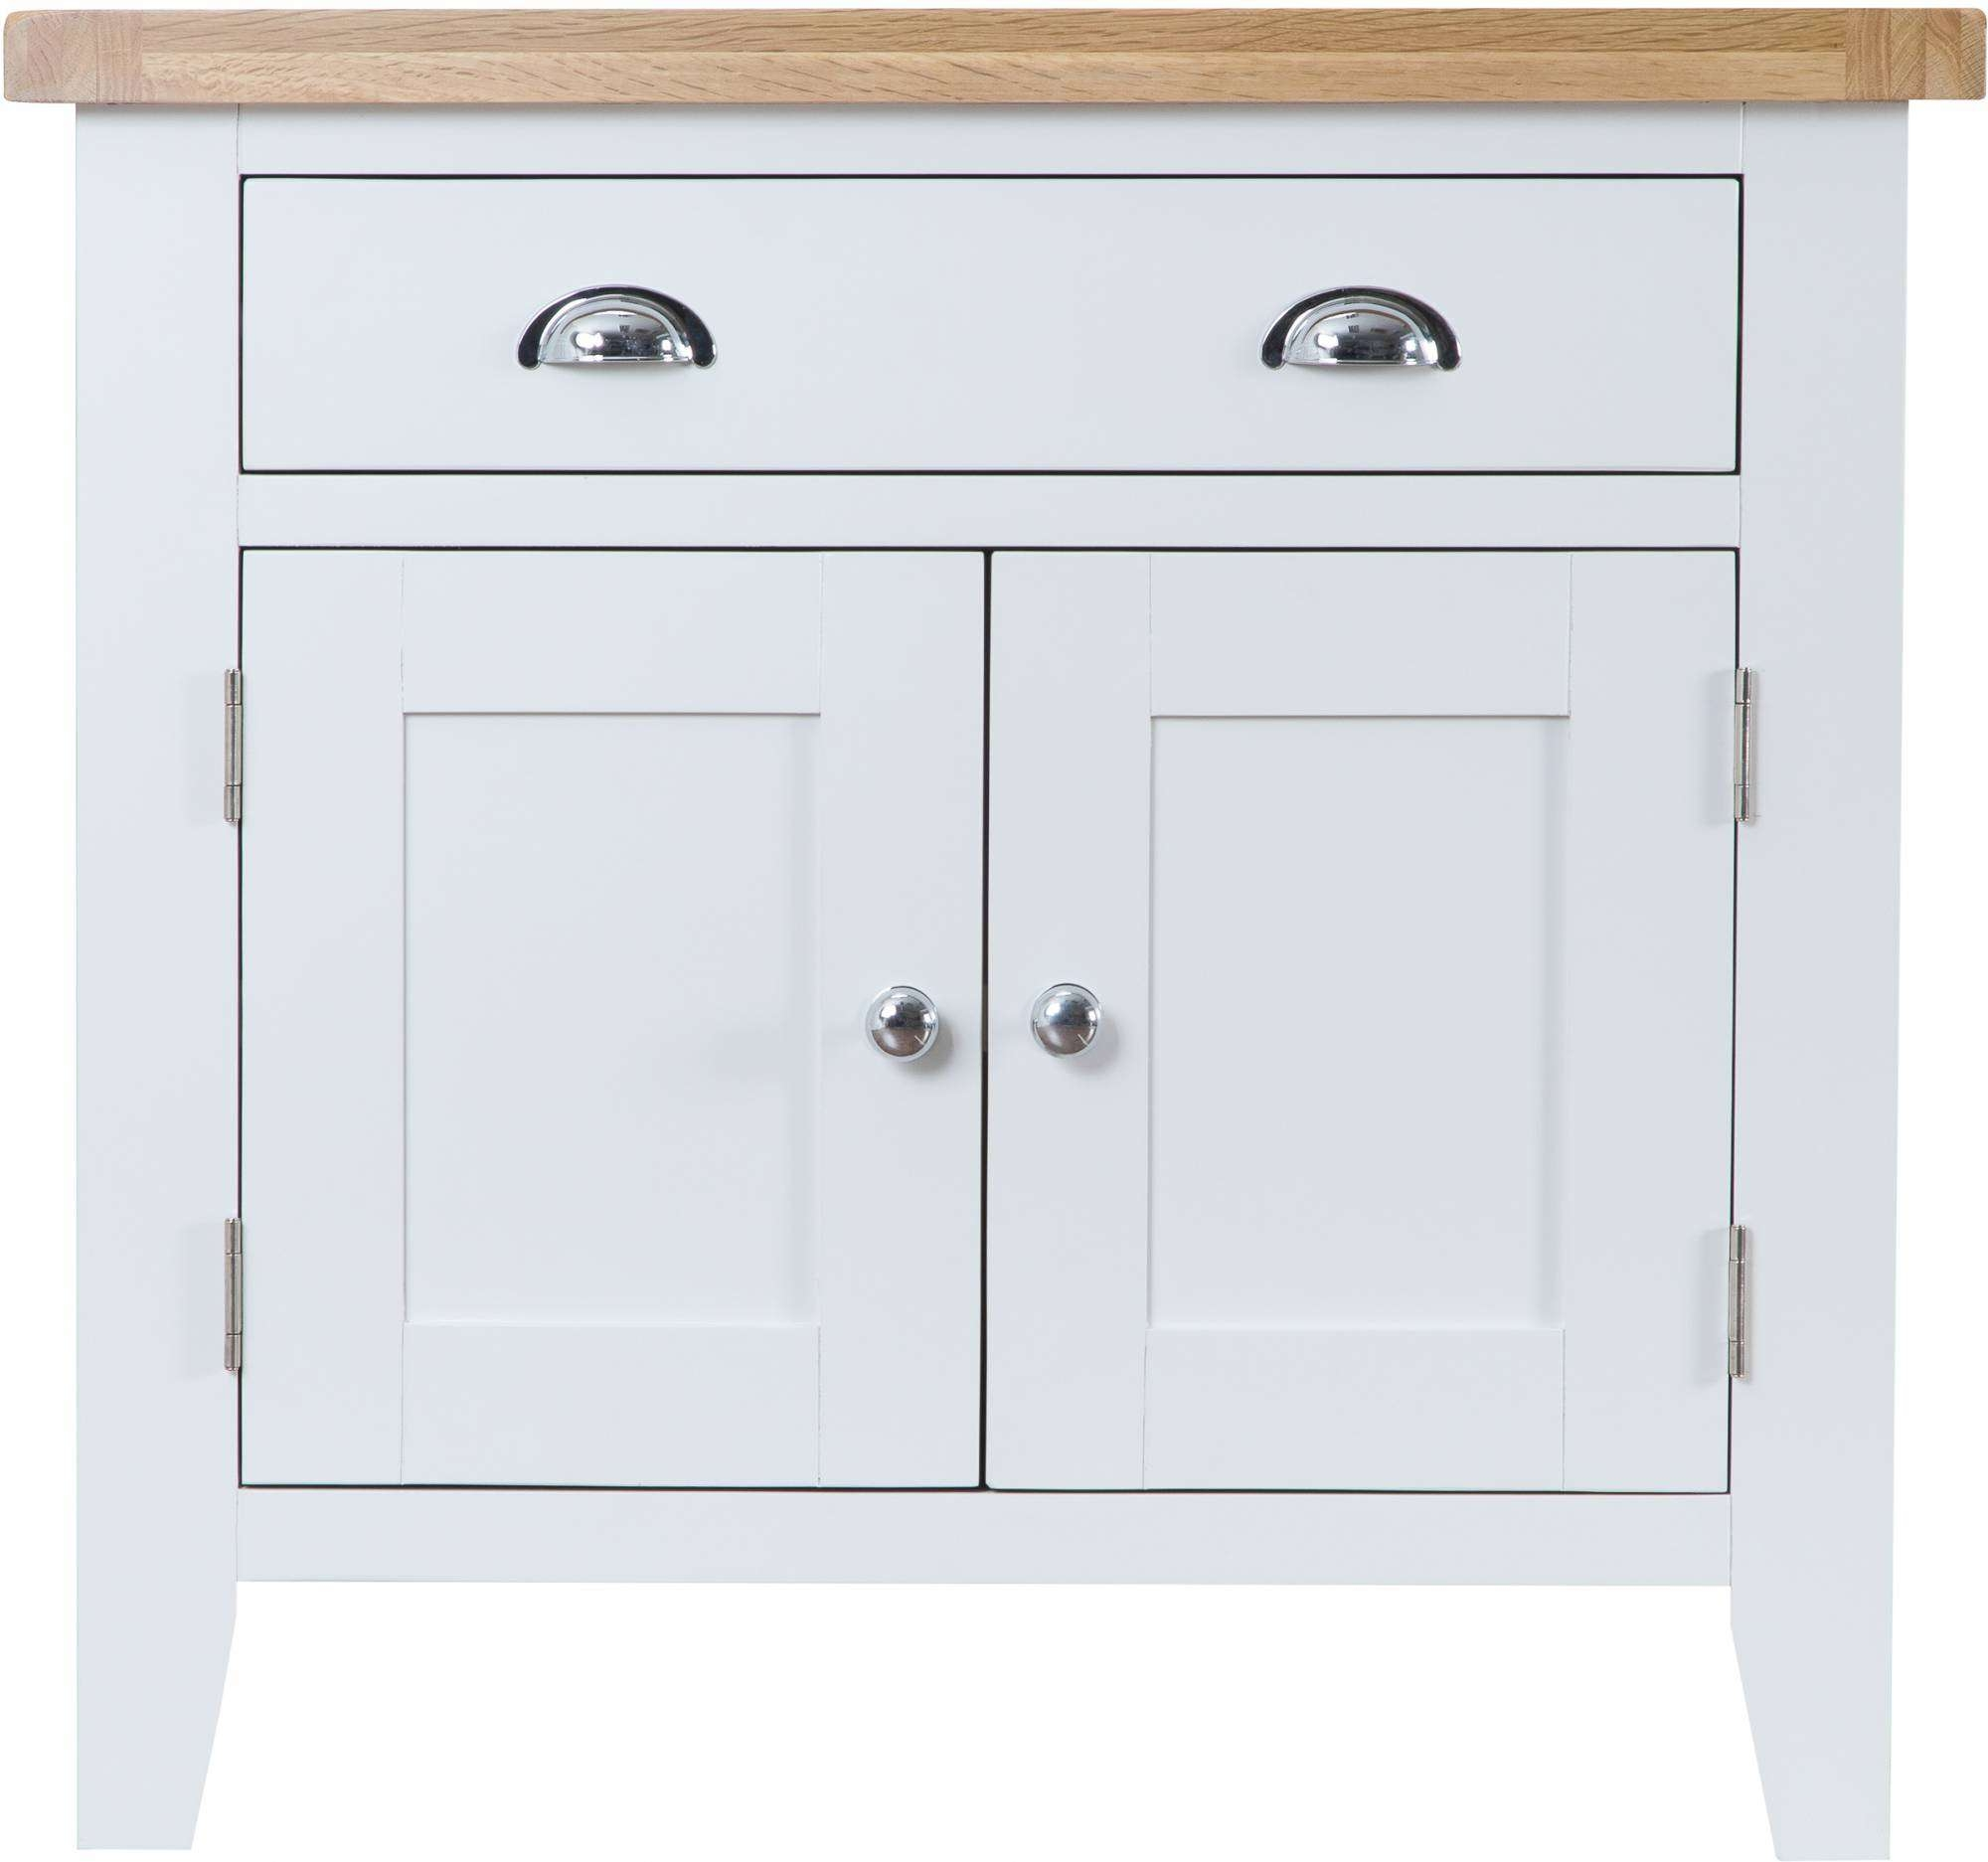 Tetbury White Sideboards | Oldrids & Downtown – Oldrids & Co Ltd Regarding White Sideboards (View 17 of 20)